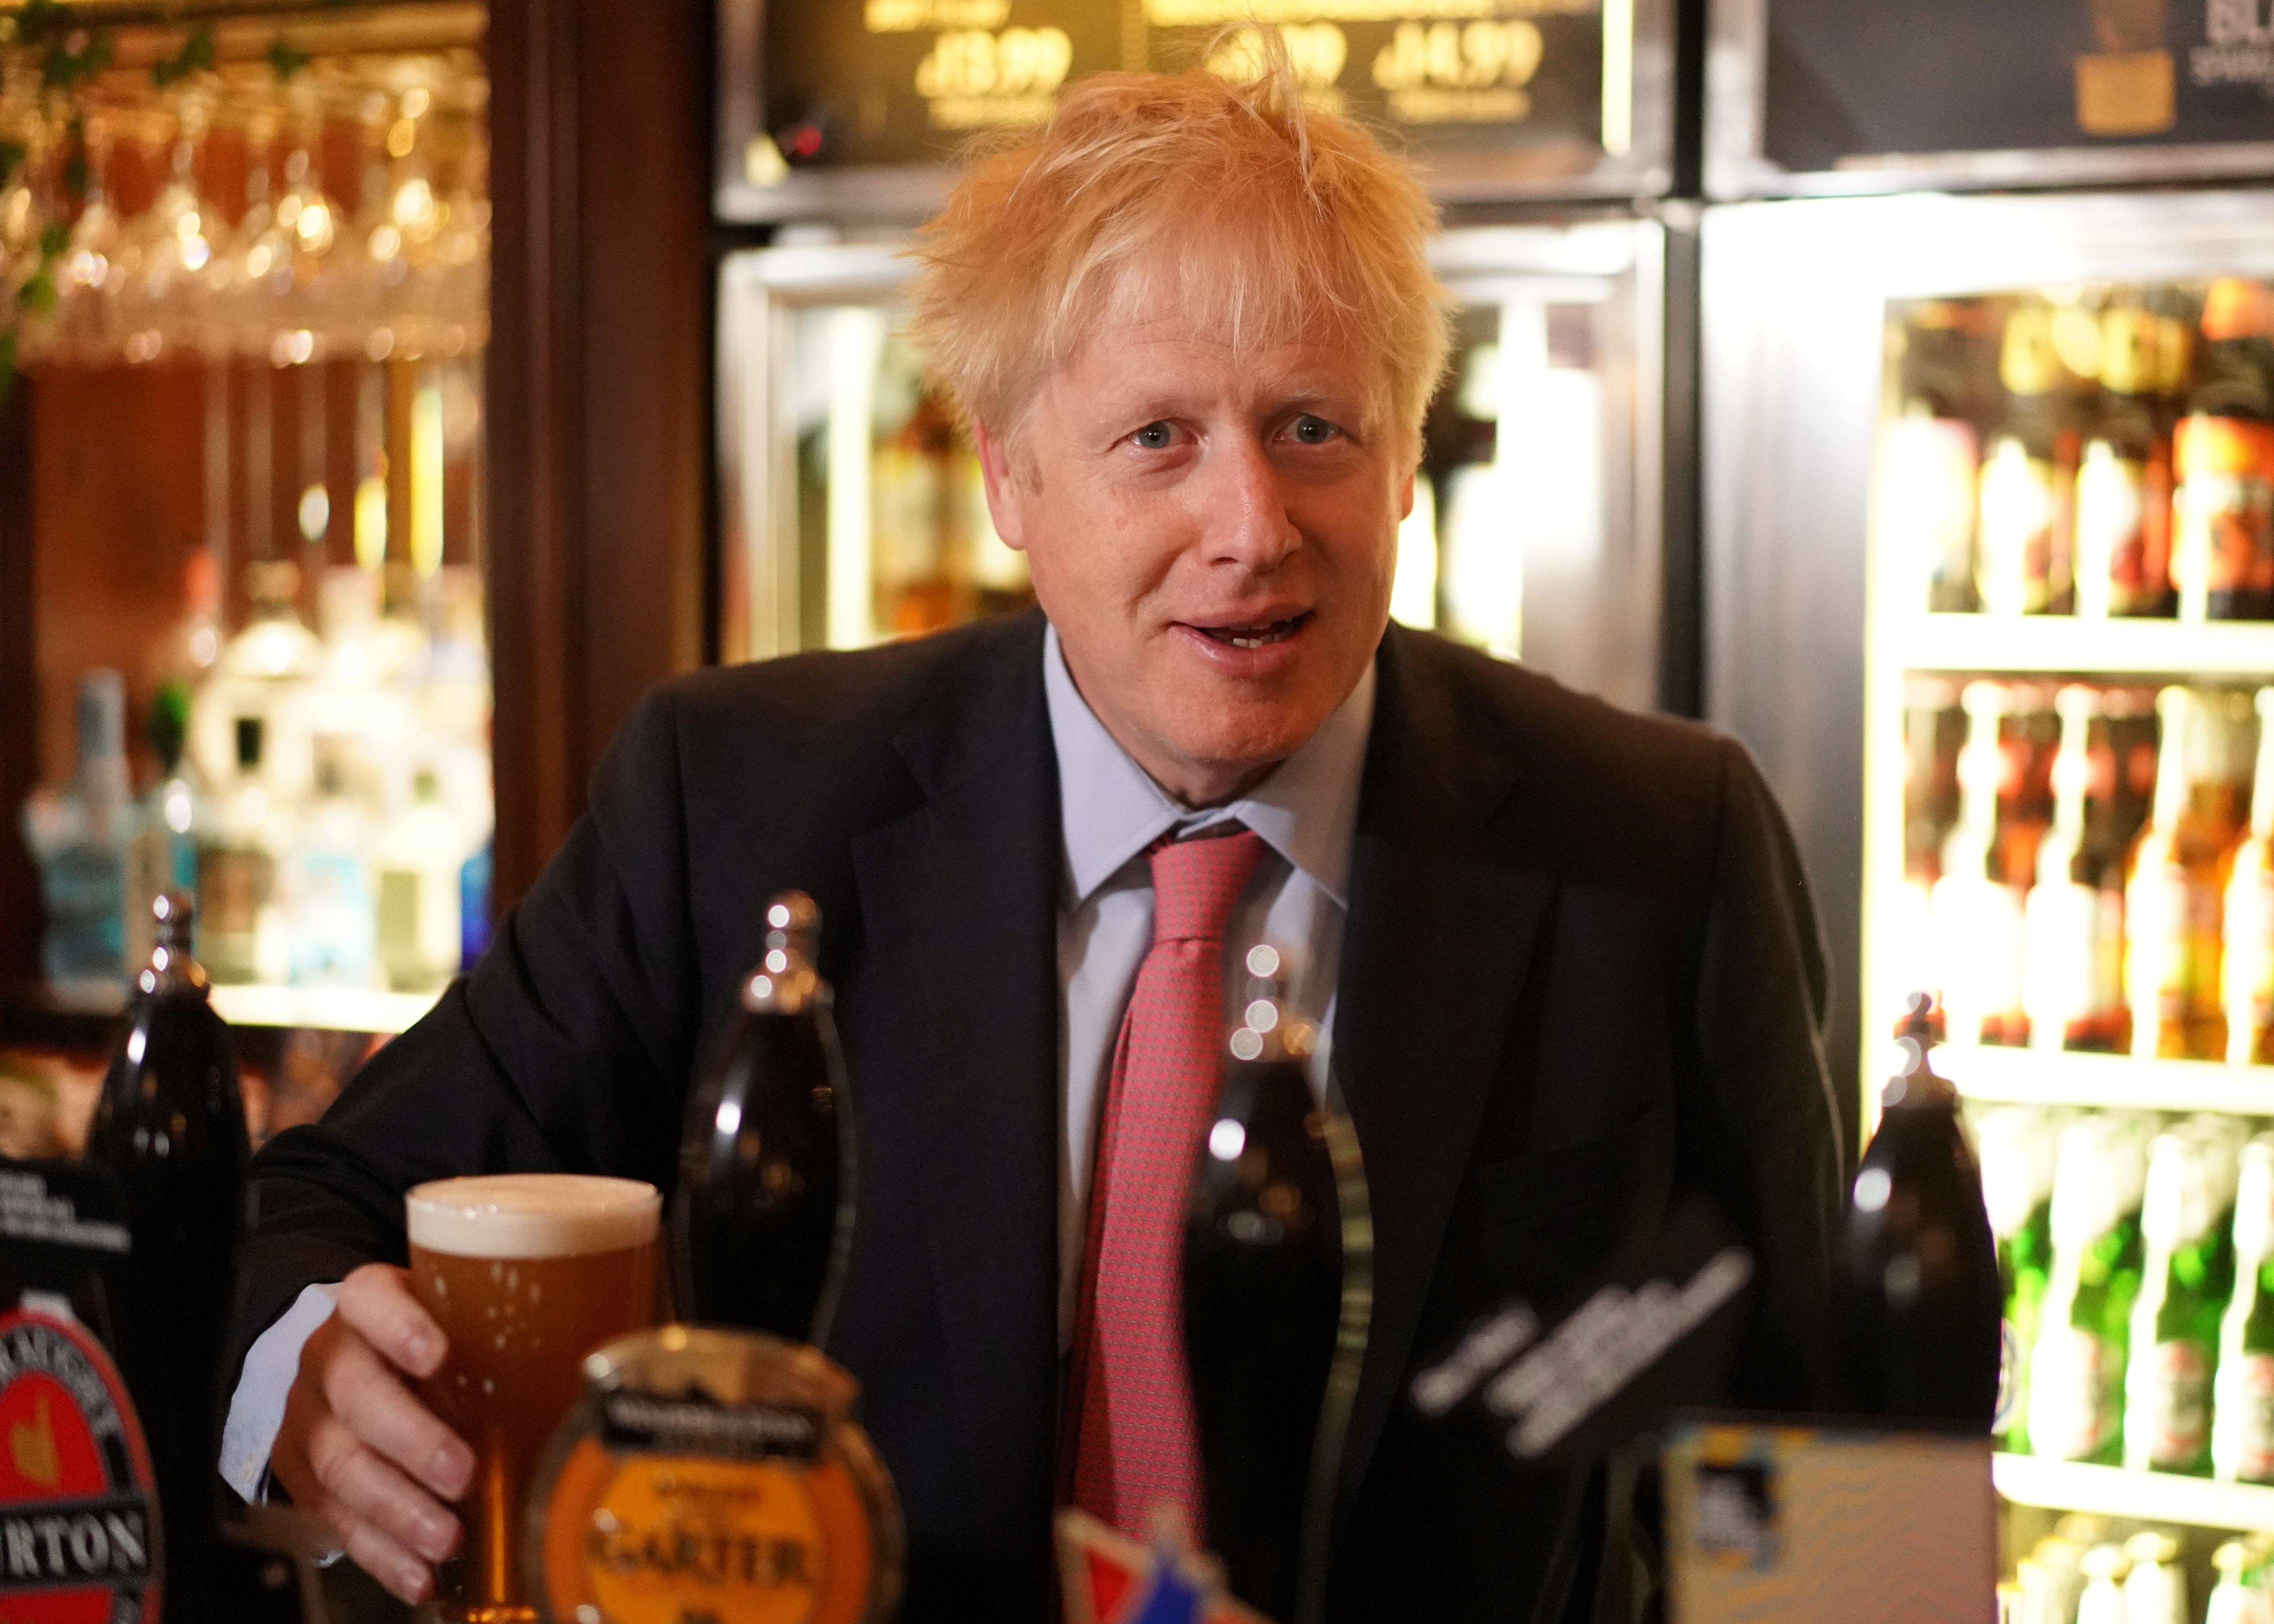 UK PM candidate Johnson: 'Very odd' to involve courts in Brexit decision